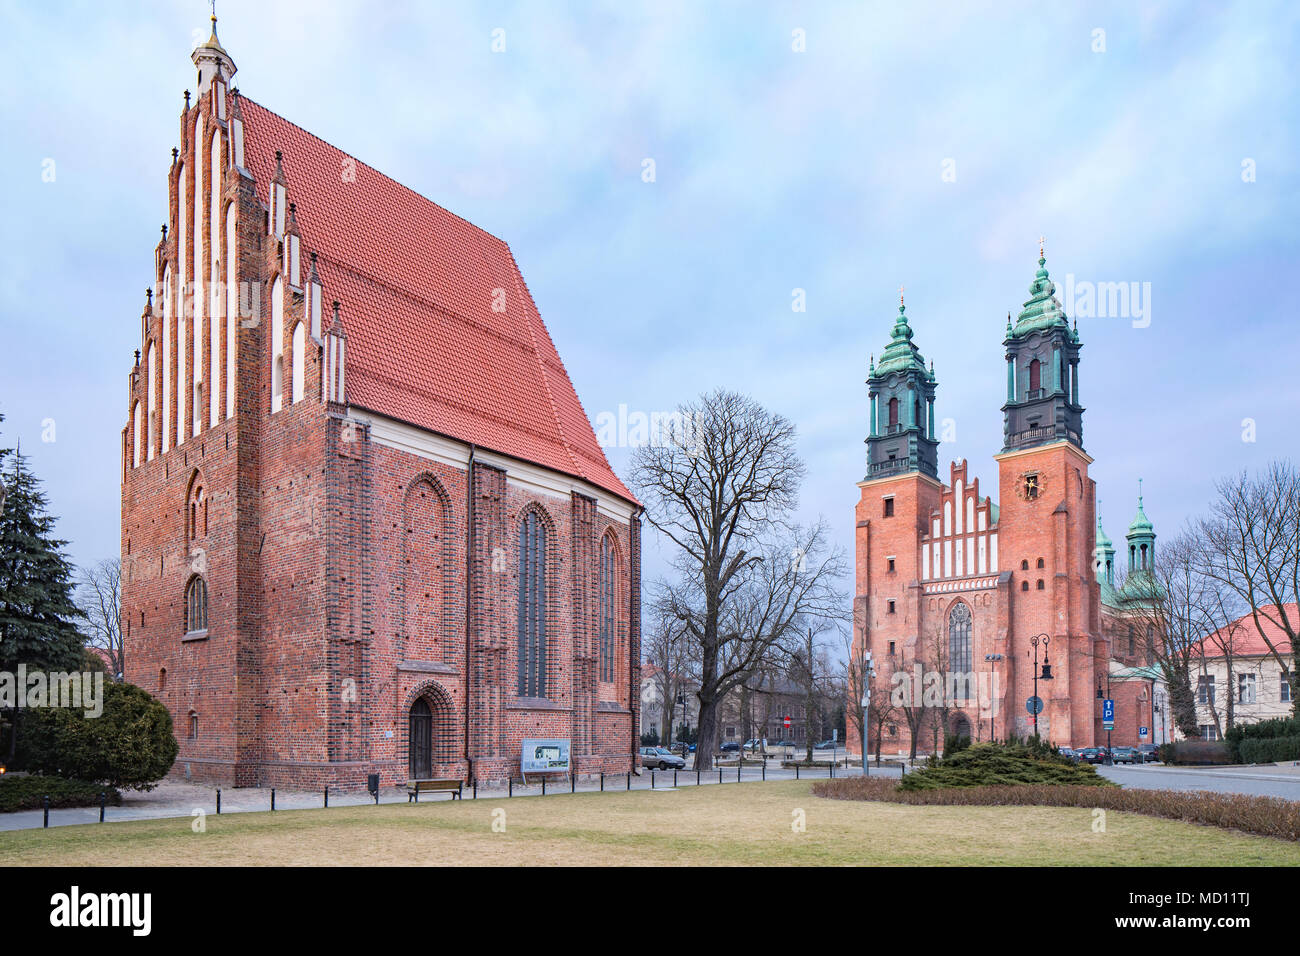 Cathedral in Poznan, on the island Ostrow Tumski between the Cybina and Warta river, Poland. Stock Photo